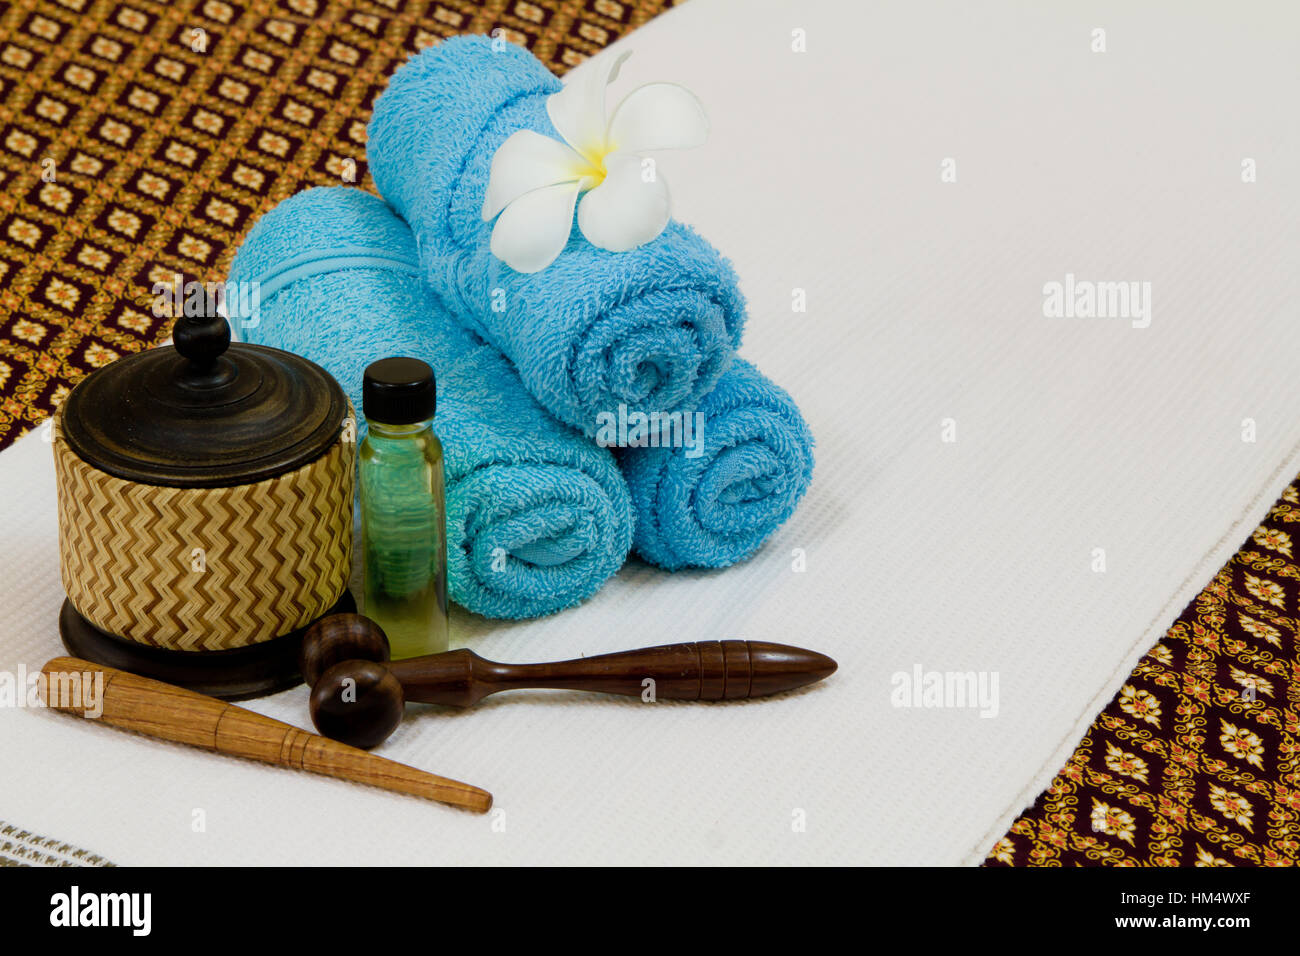 Health spa with white flower bottles with essential oil stock photo health spa with white flower bottles with essential oil mightylinksfo